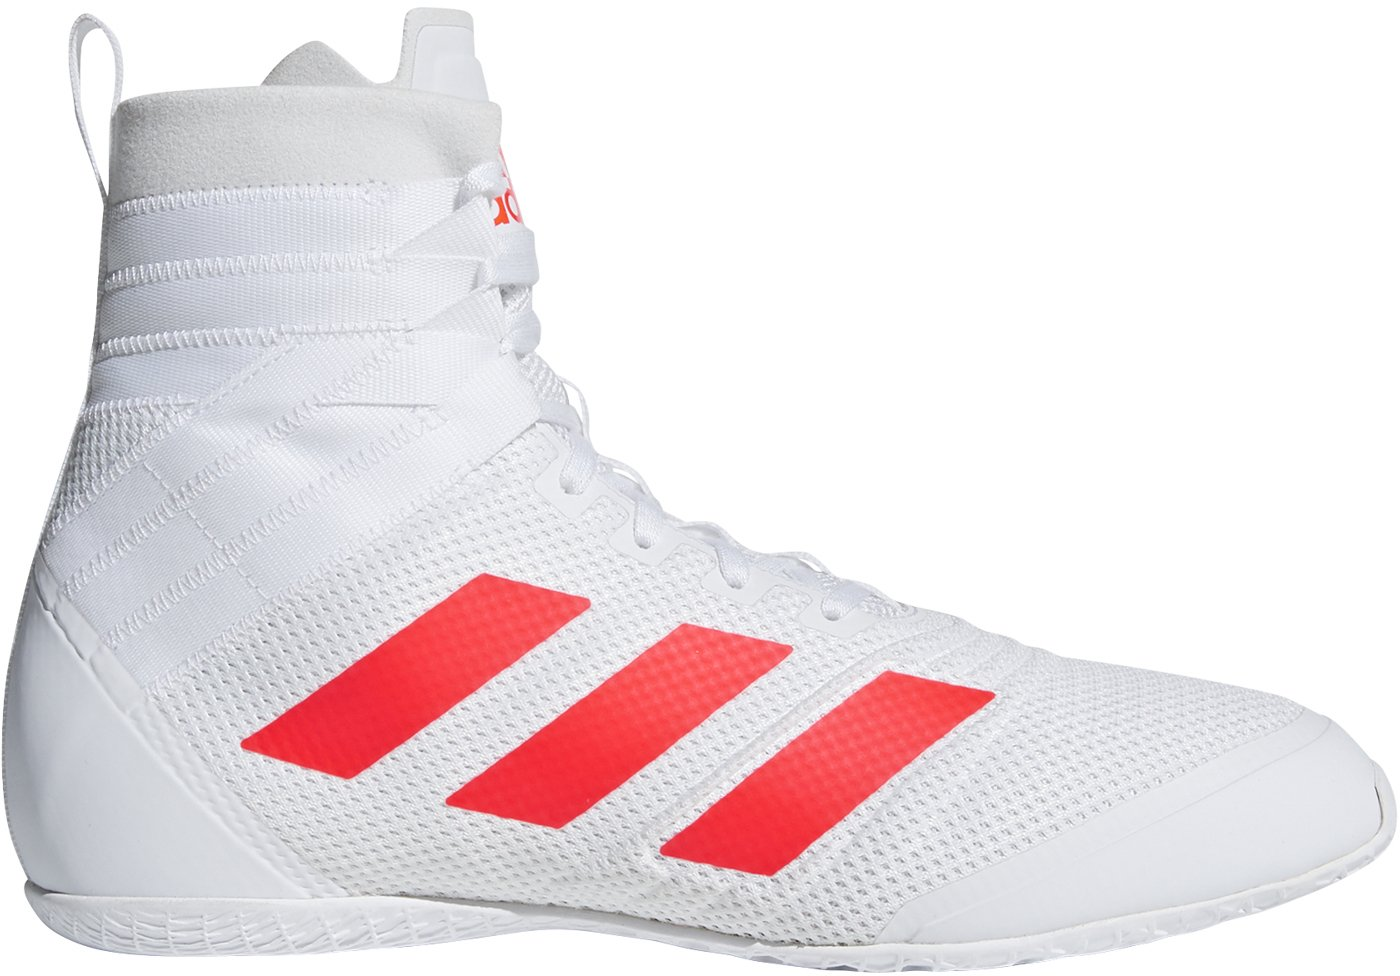 adidas Speedex 18 - Zapatillas de Boxeo, Color Blanco